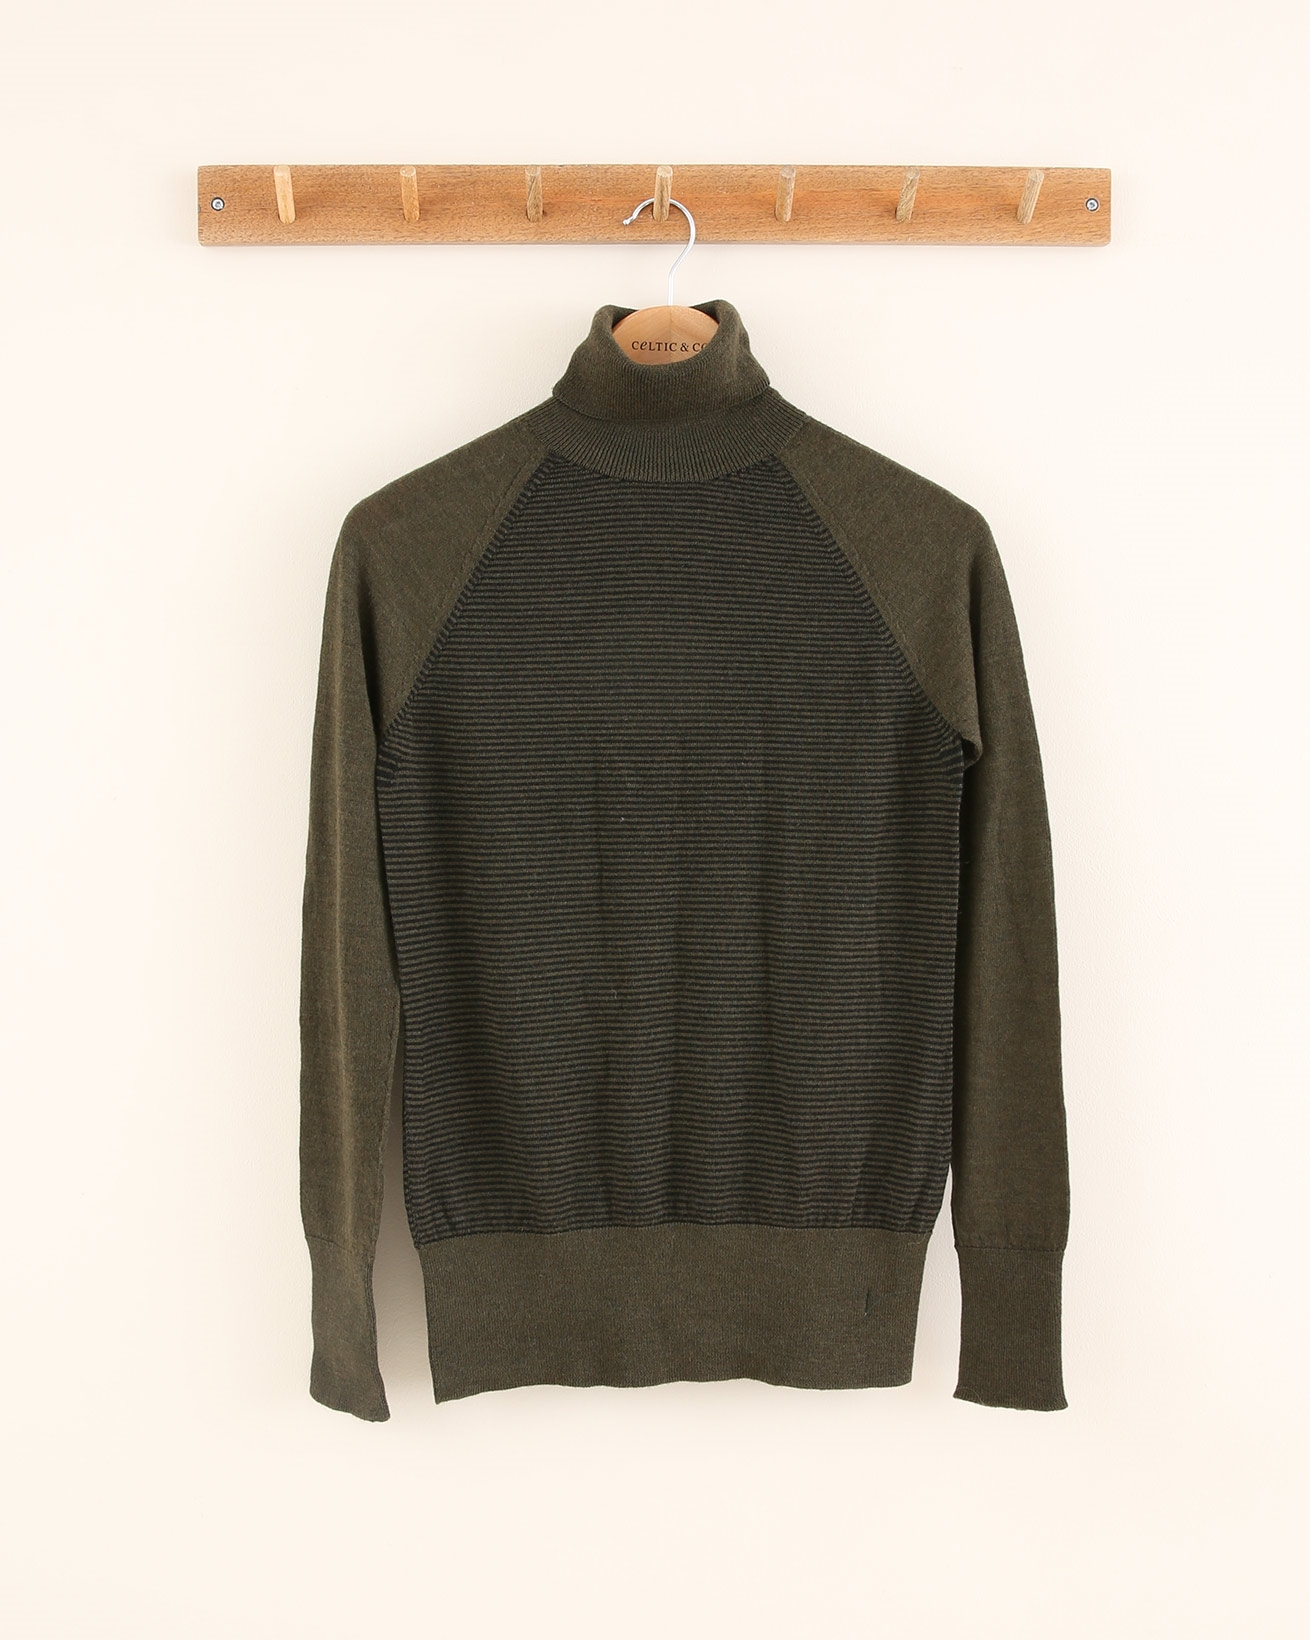 Merino Roll Neck - Size Small - Olive Charcoal Stripe - 1801